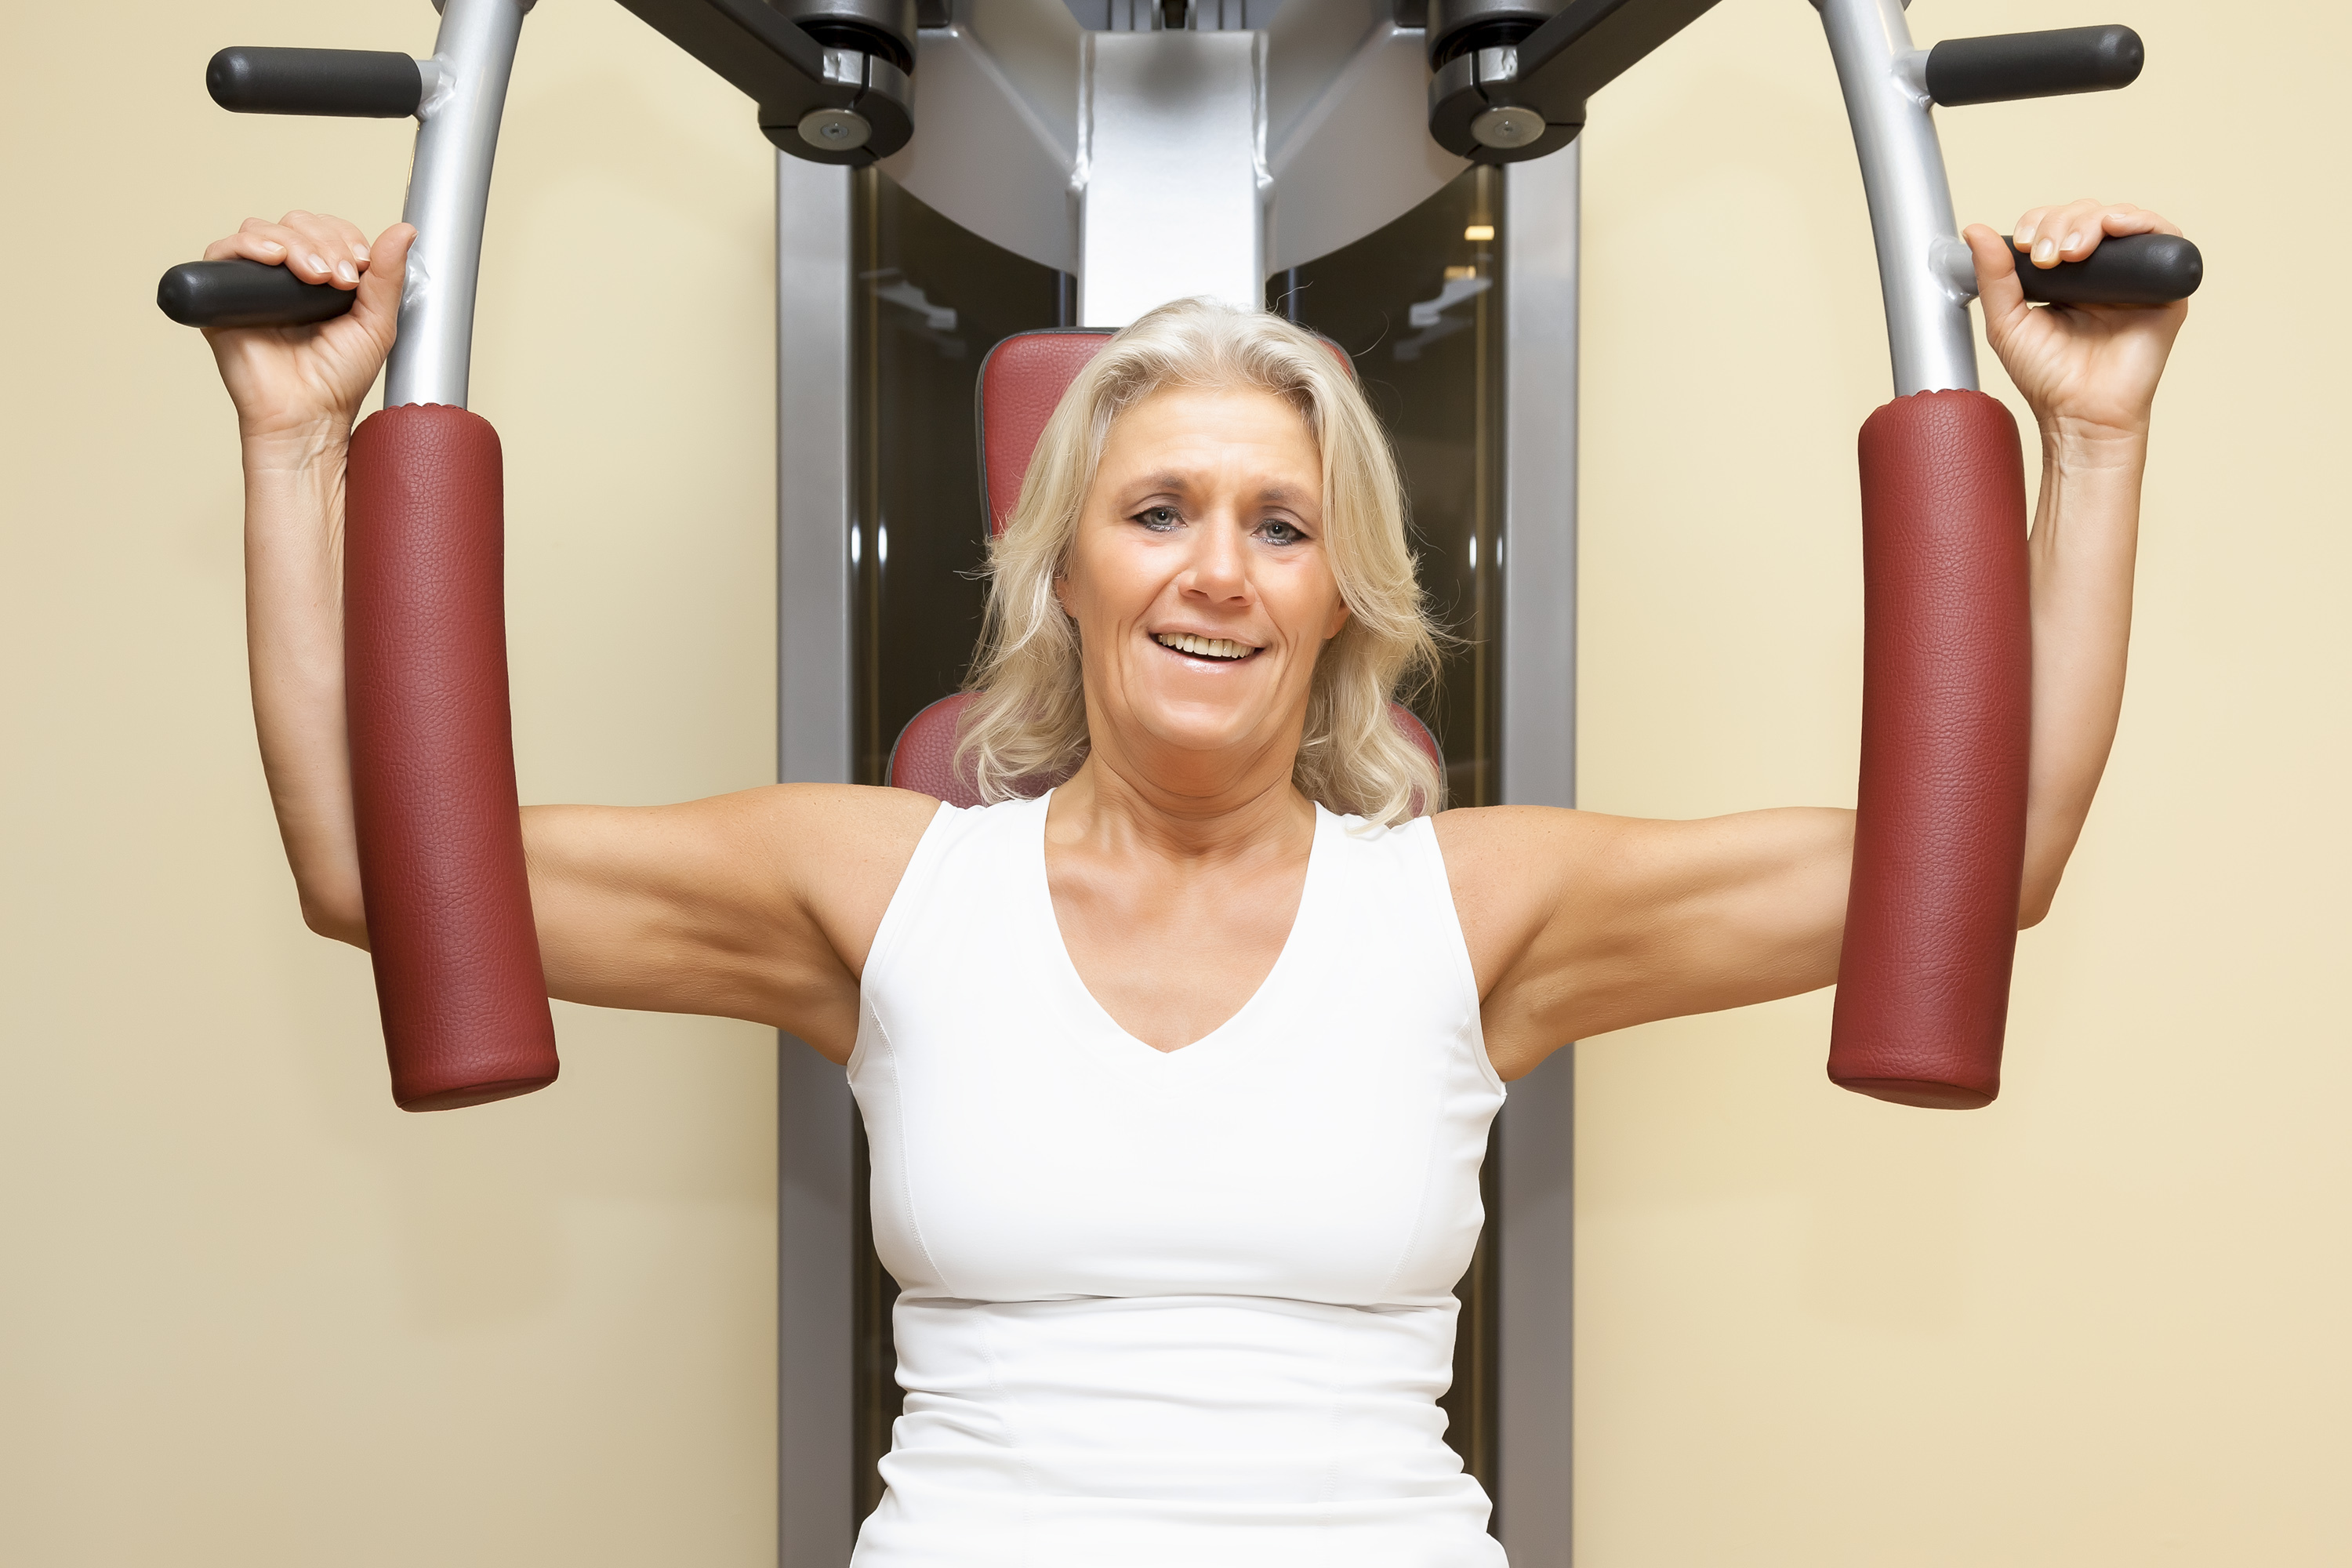 Blood Flow Restriction for Strength Training in Older Adults without High Loads